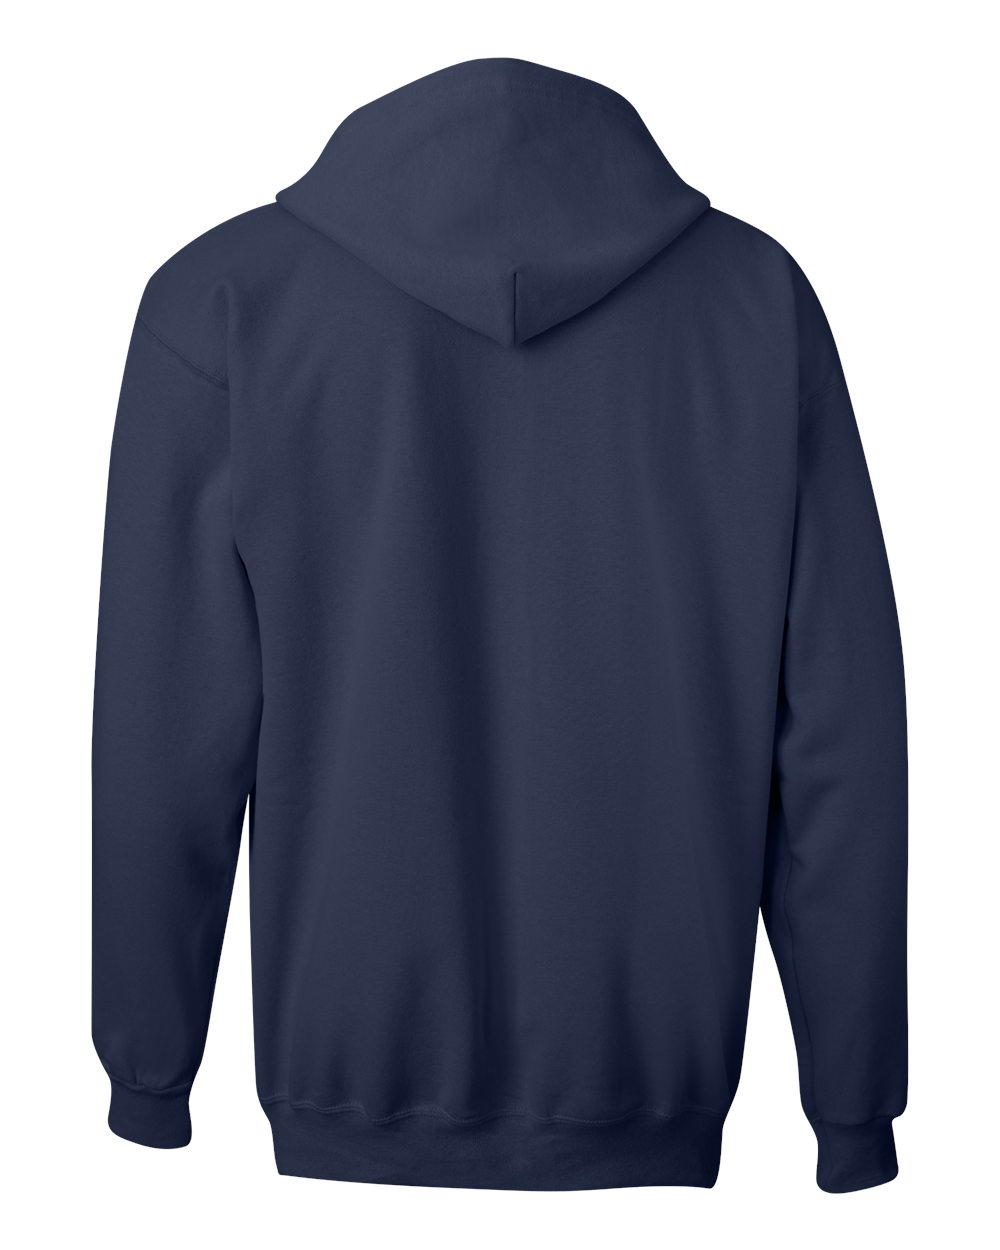 Hanes-Mens-Blank-Ultimate-Cotton-Full-Zip-Hooded-Sweatshirt-F280-up-to-3XL miniature 16